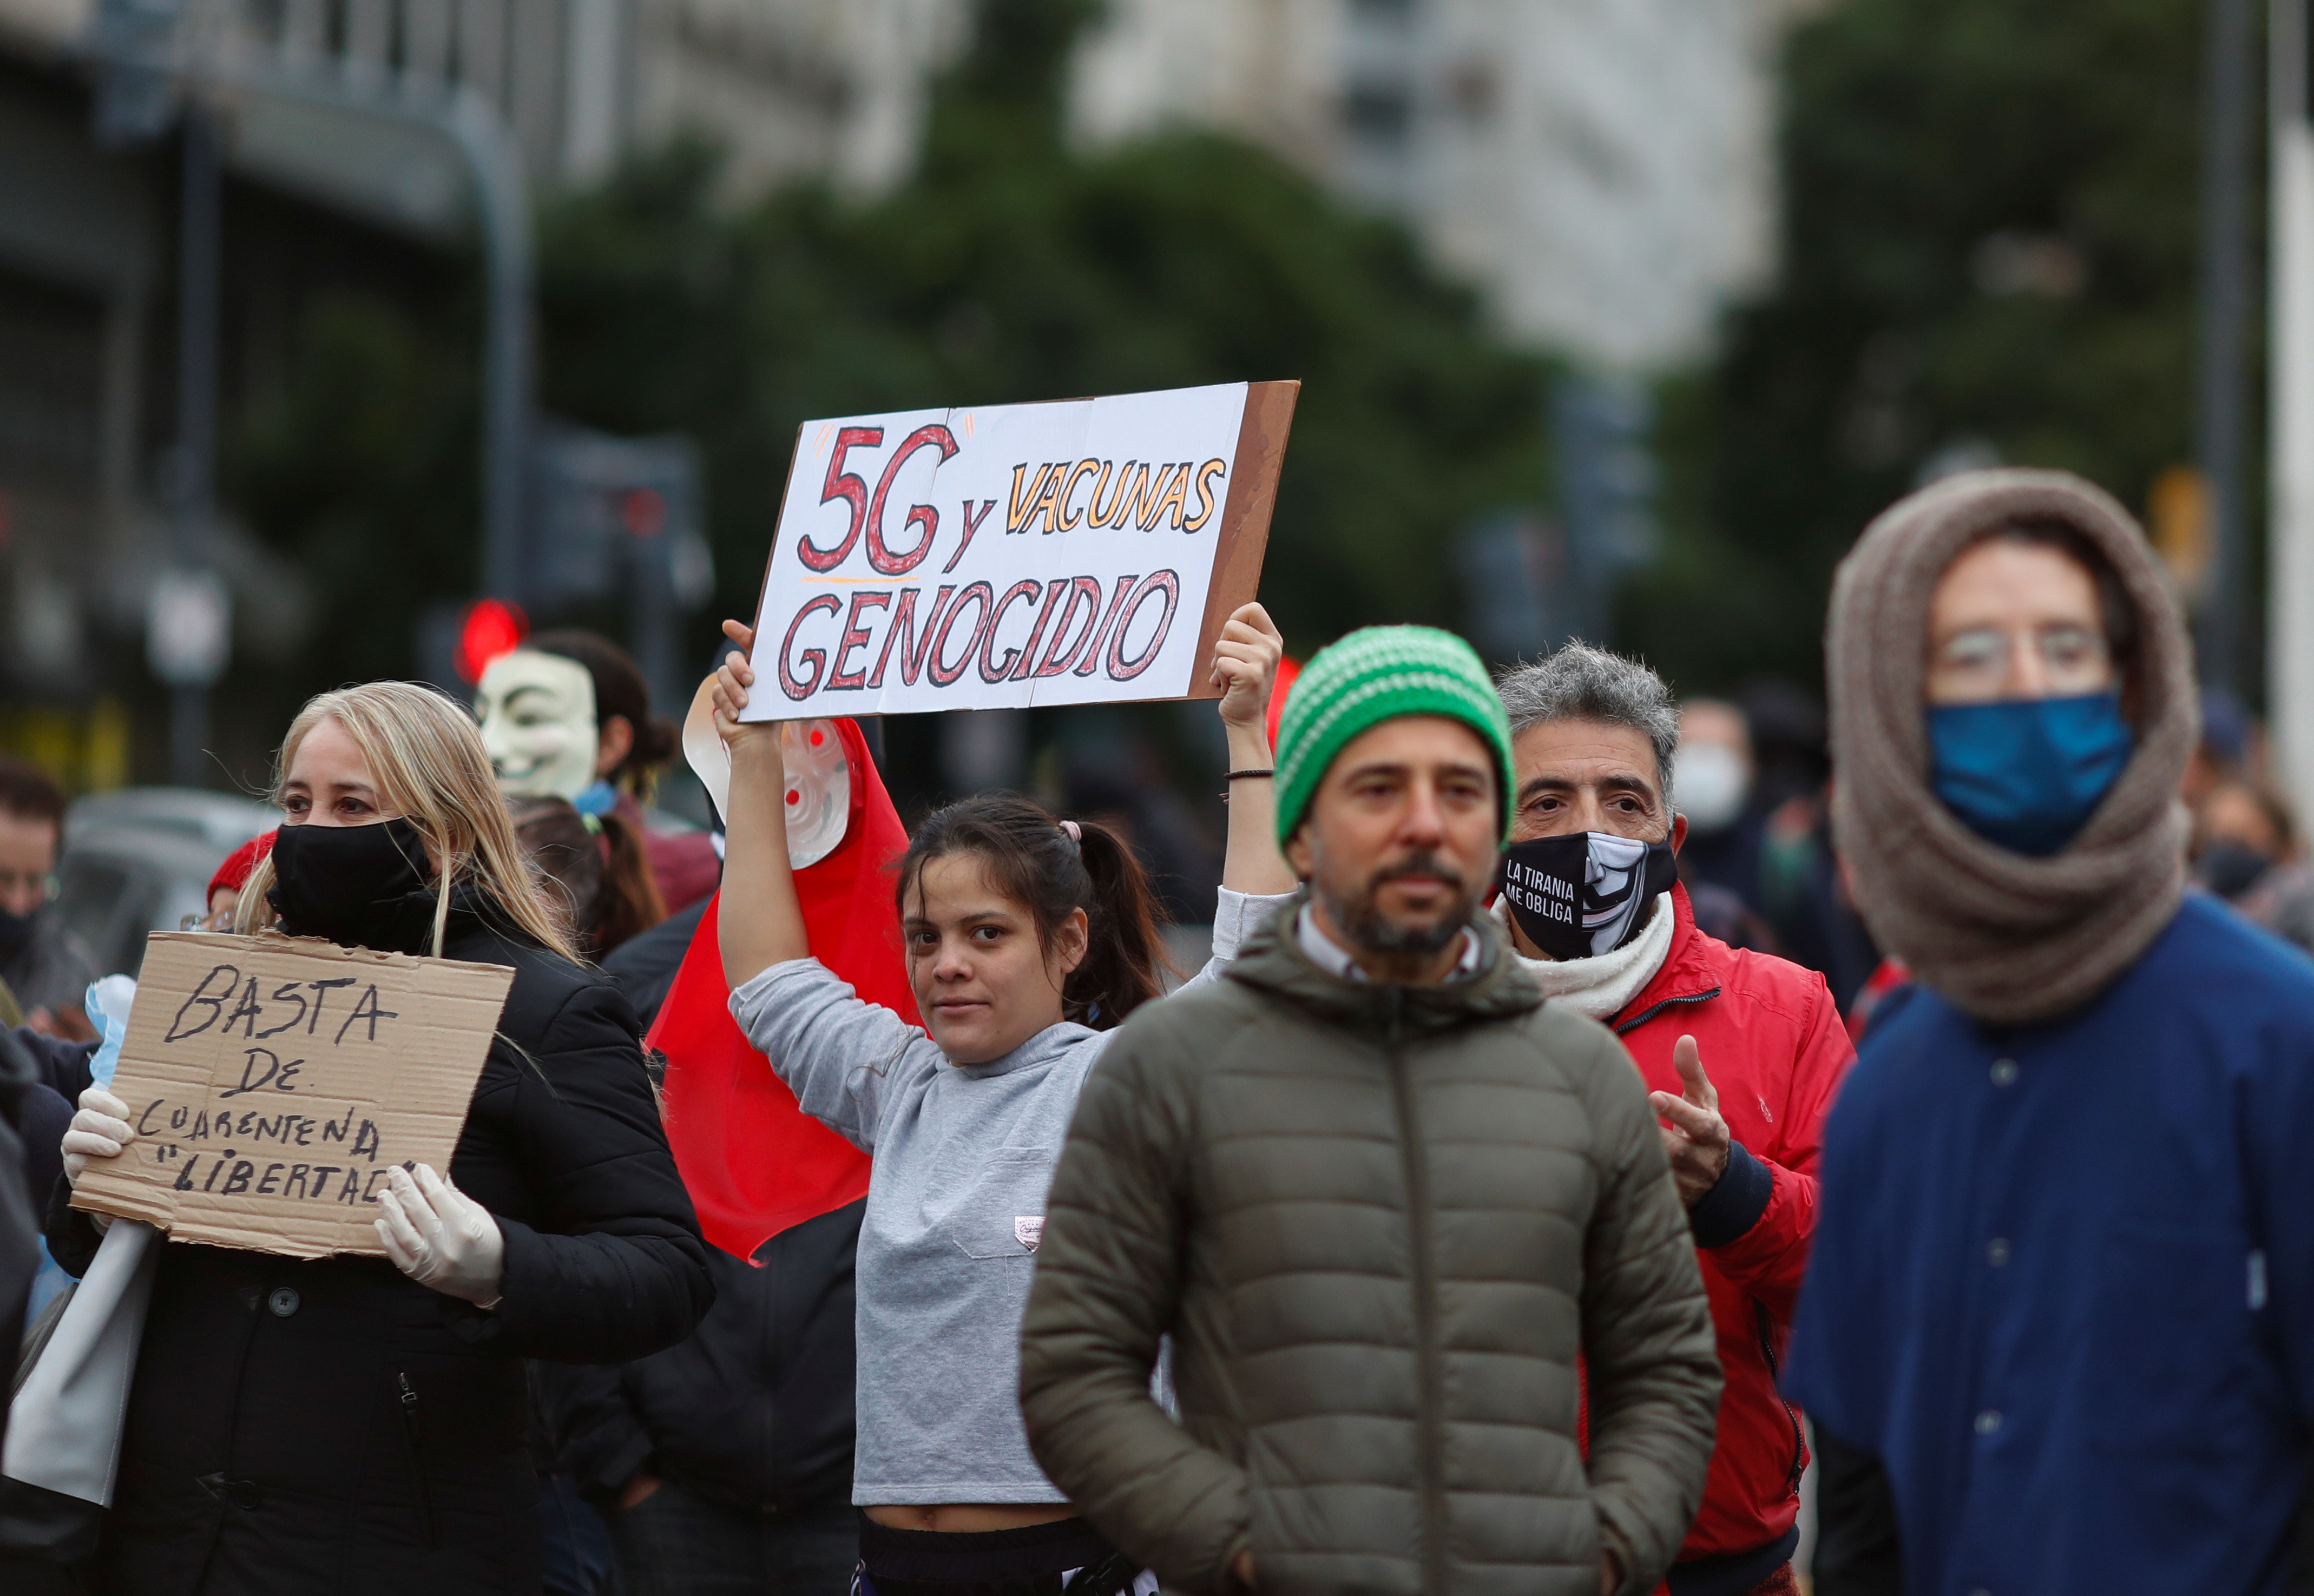 """Anti-quarantine demonstrators holds a placard that reads """"5G and vaccines genocide"""", during a protest against the quarantine measures in the city of Buenos Aires, amid the coronavirus disease (COVID-19) outbreak, at the Buenos Aires obelisk, Argentina May 30, 2020. REUTERS/Agustin Marcarian - RC29ZG9UC60N"""